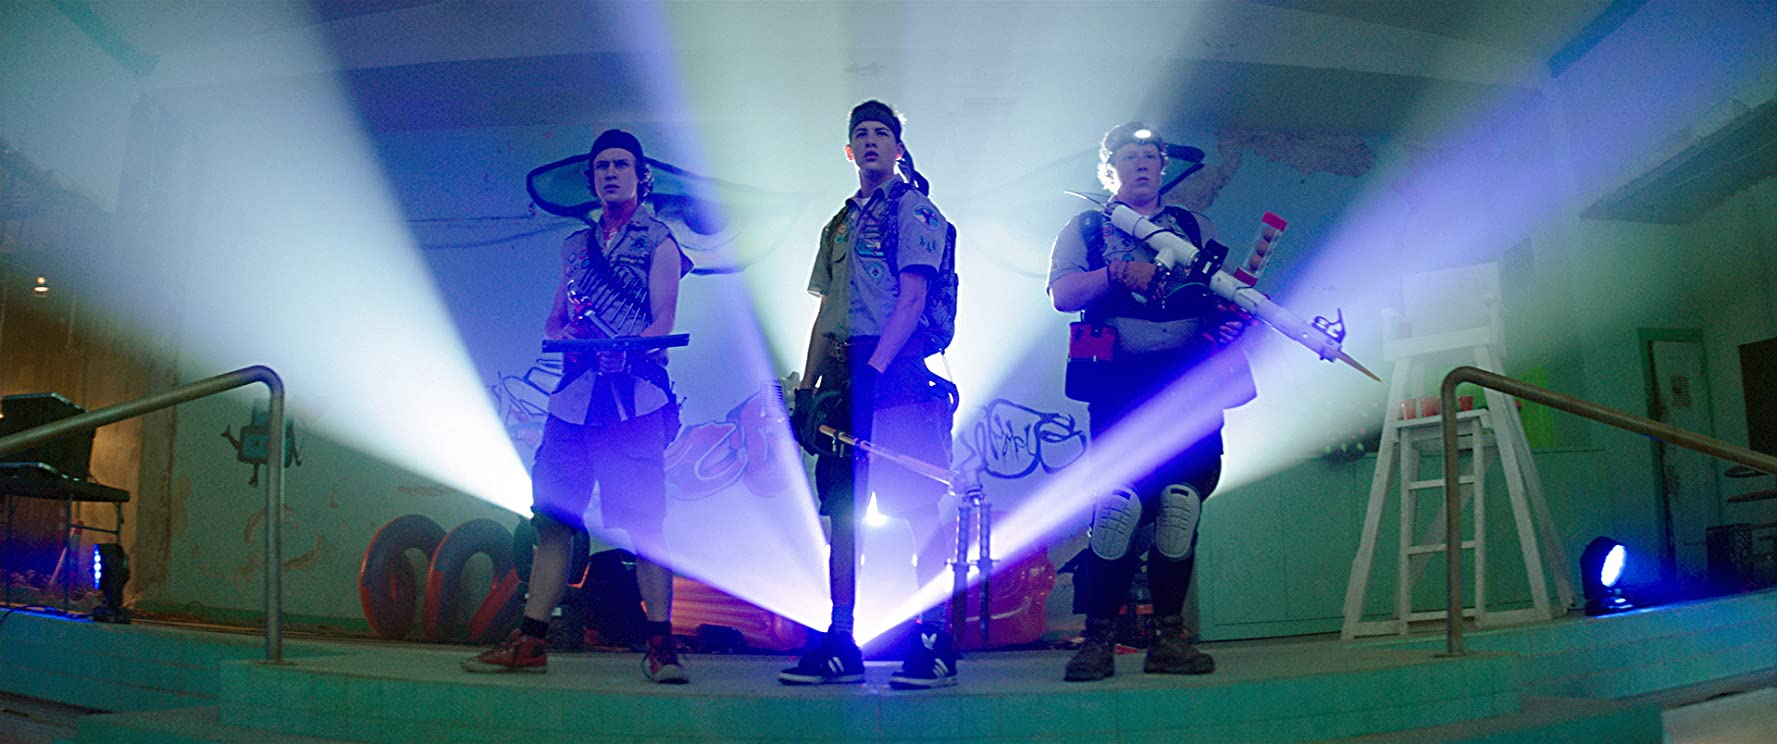 Logan Miller, Tye Sheridan, and Joey Morgan in Scouts Guide to the Zombie Apocalypse (2015)